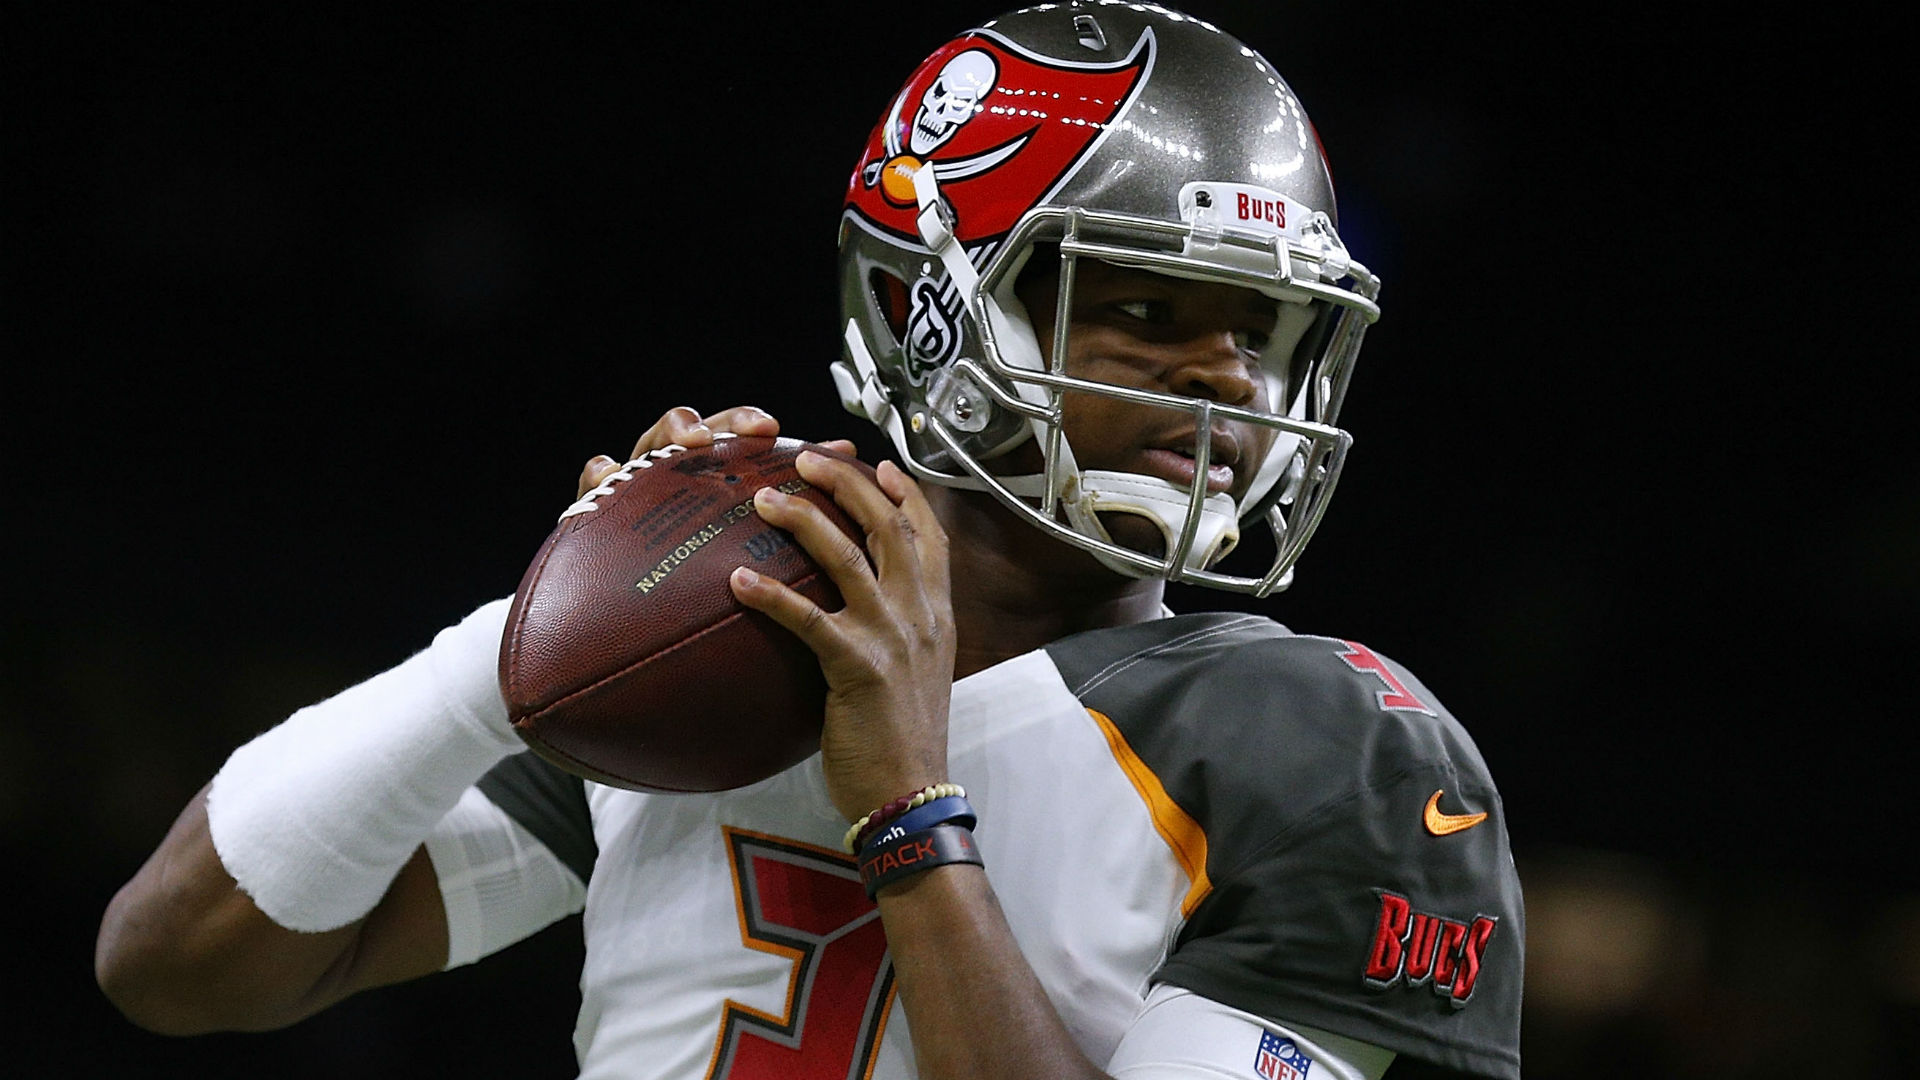 Tampa Bay Buccaneers shutting down injured QB Jameis Winston